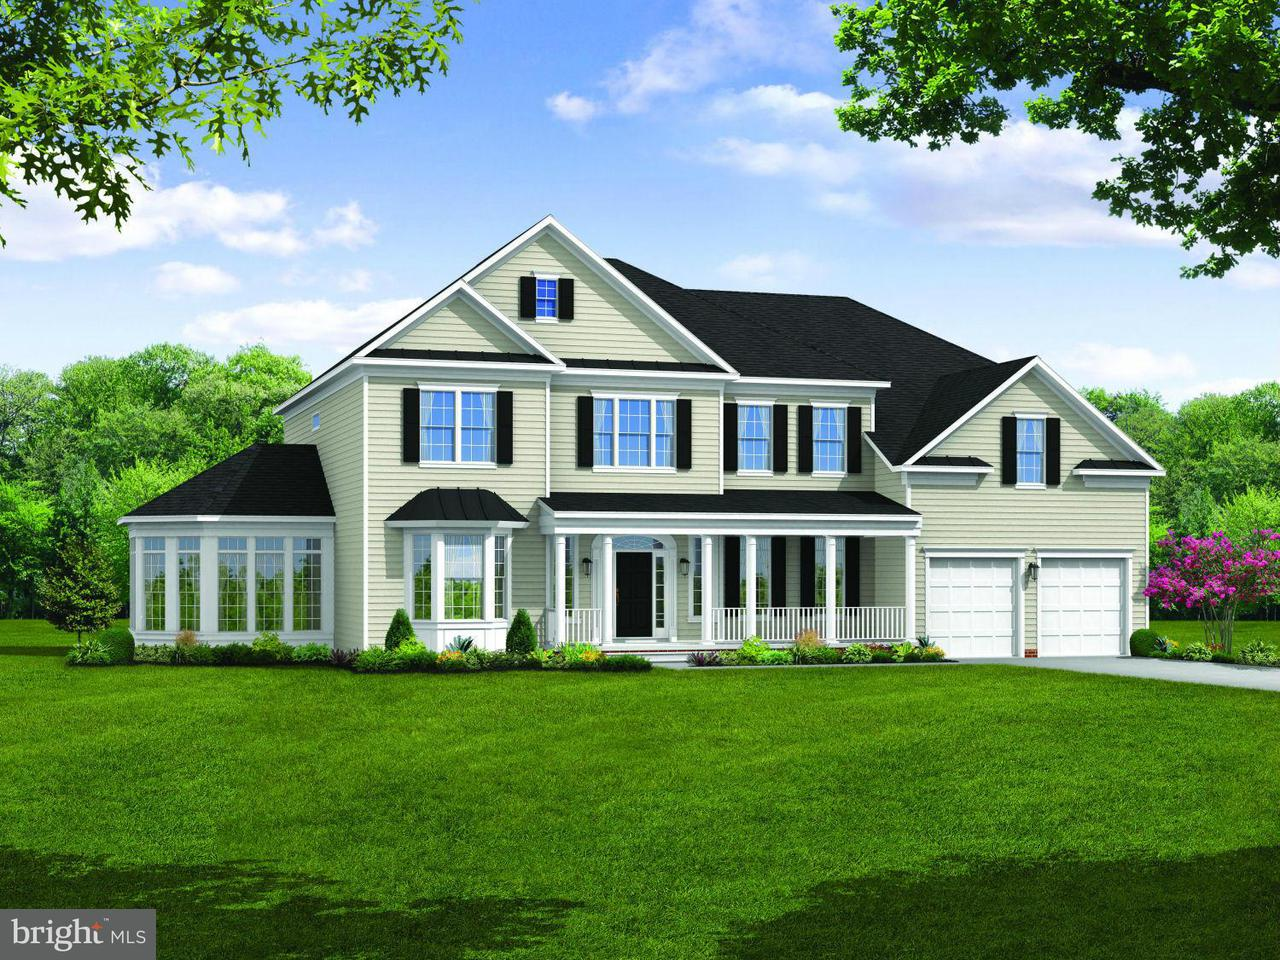 Maison unifamiliale pour l Vente à 2078 BANDY Avenue 2078 BANDY Avenue Eldersburg, Maryland 21784 États-Unis